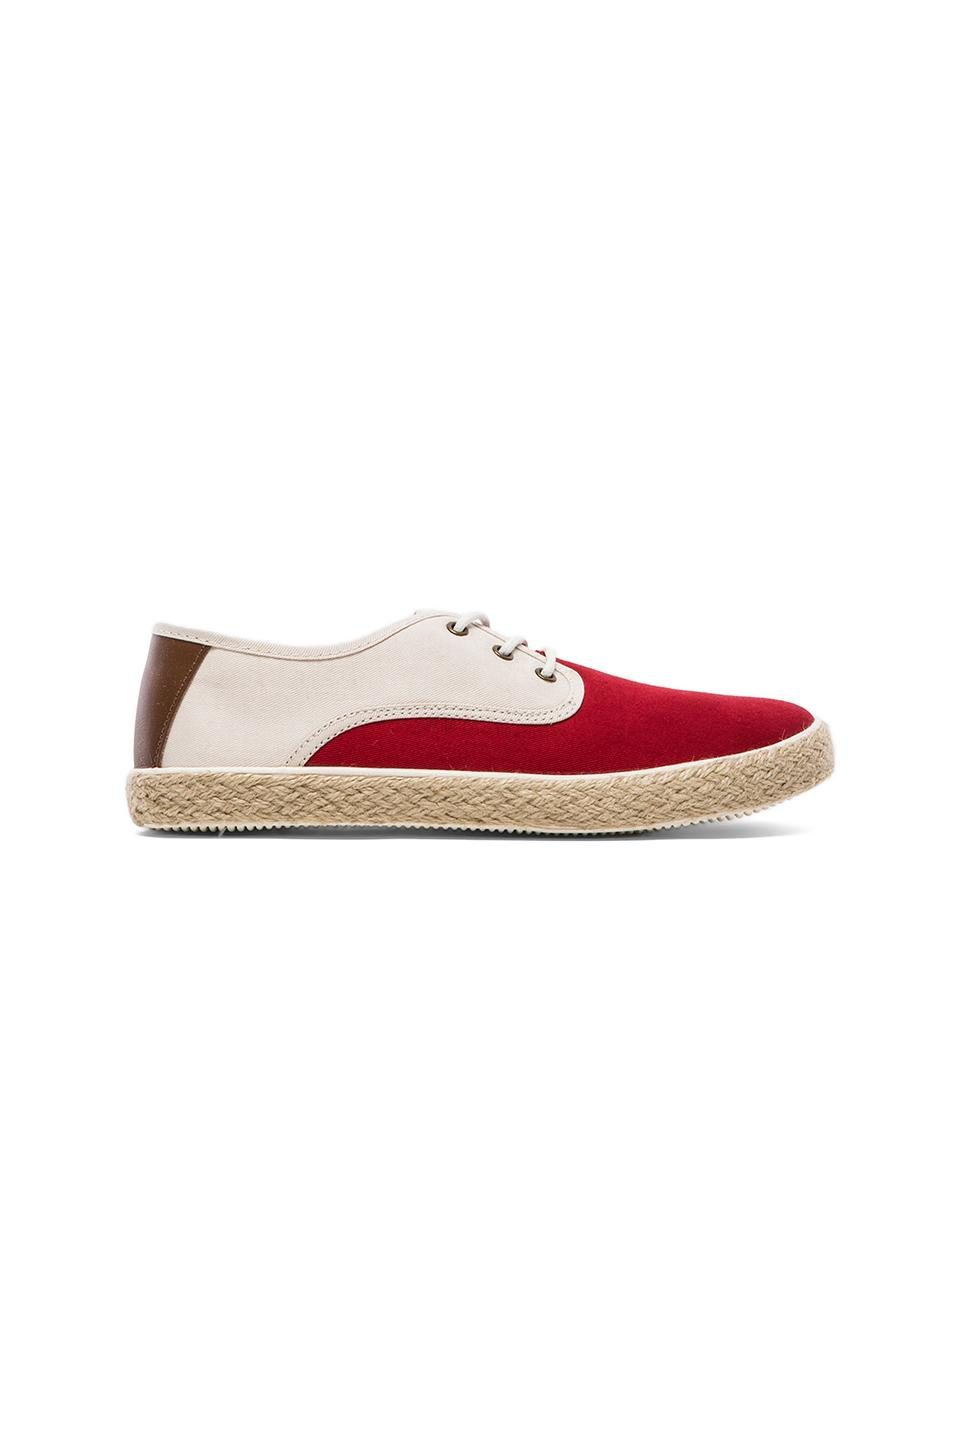 Generic Surplus Wino in Red & Natural Twill